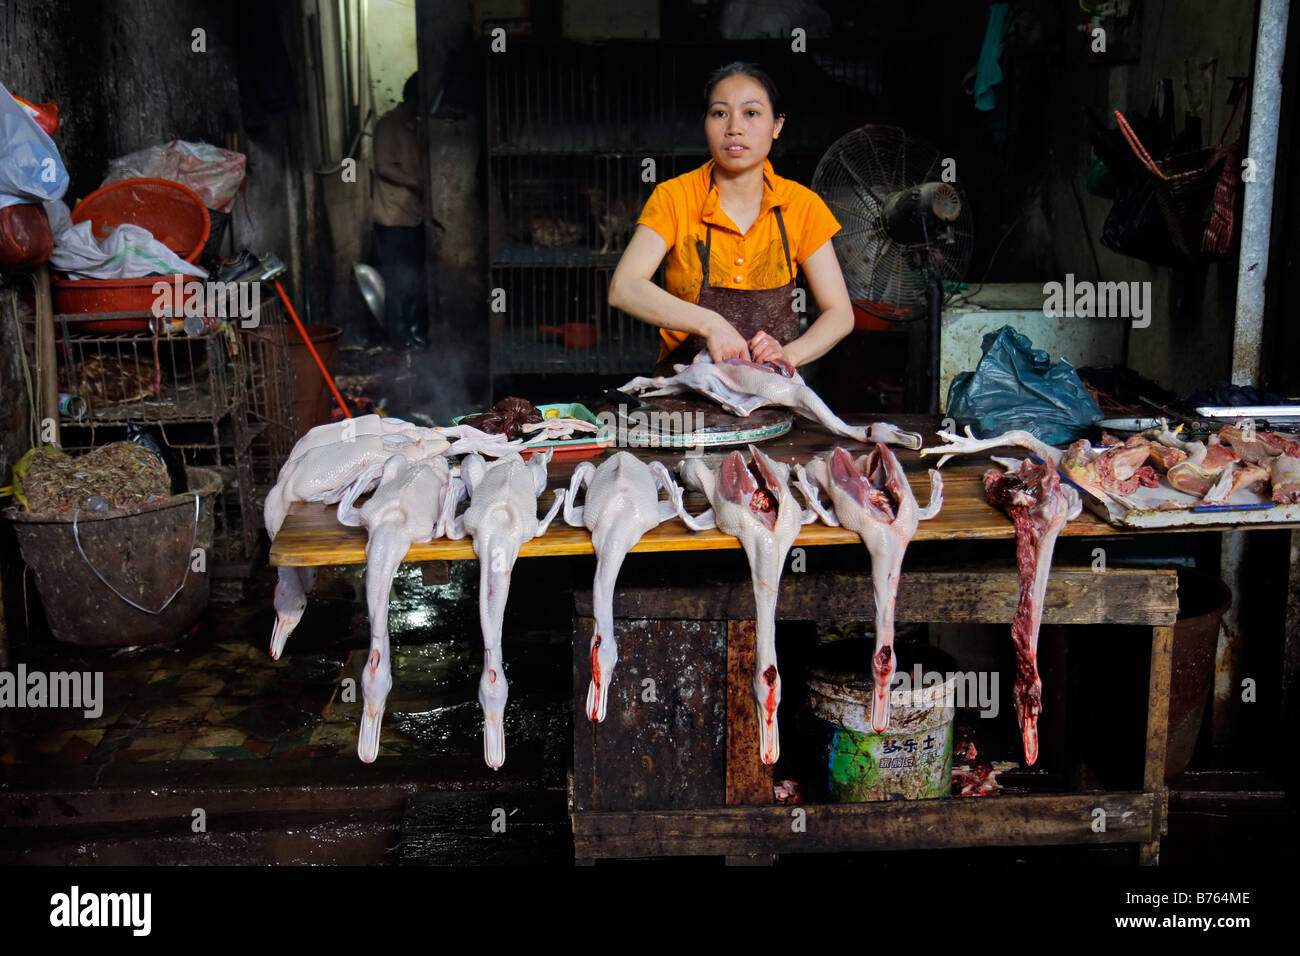 Chinese woman with slaughtered ducks on display on an open market, Yangshuo, Guangxi region, China - Stock Image